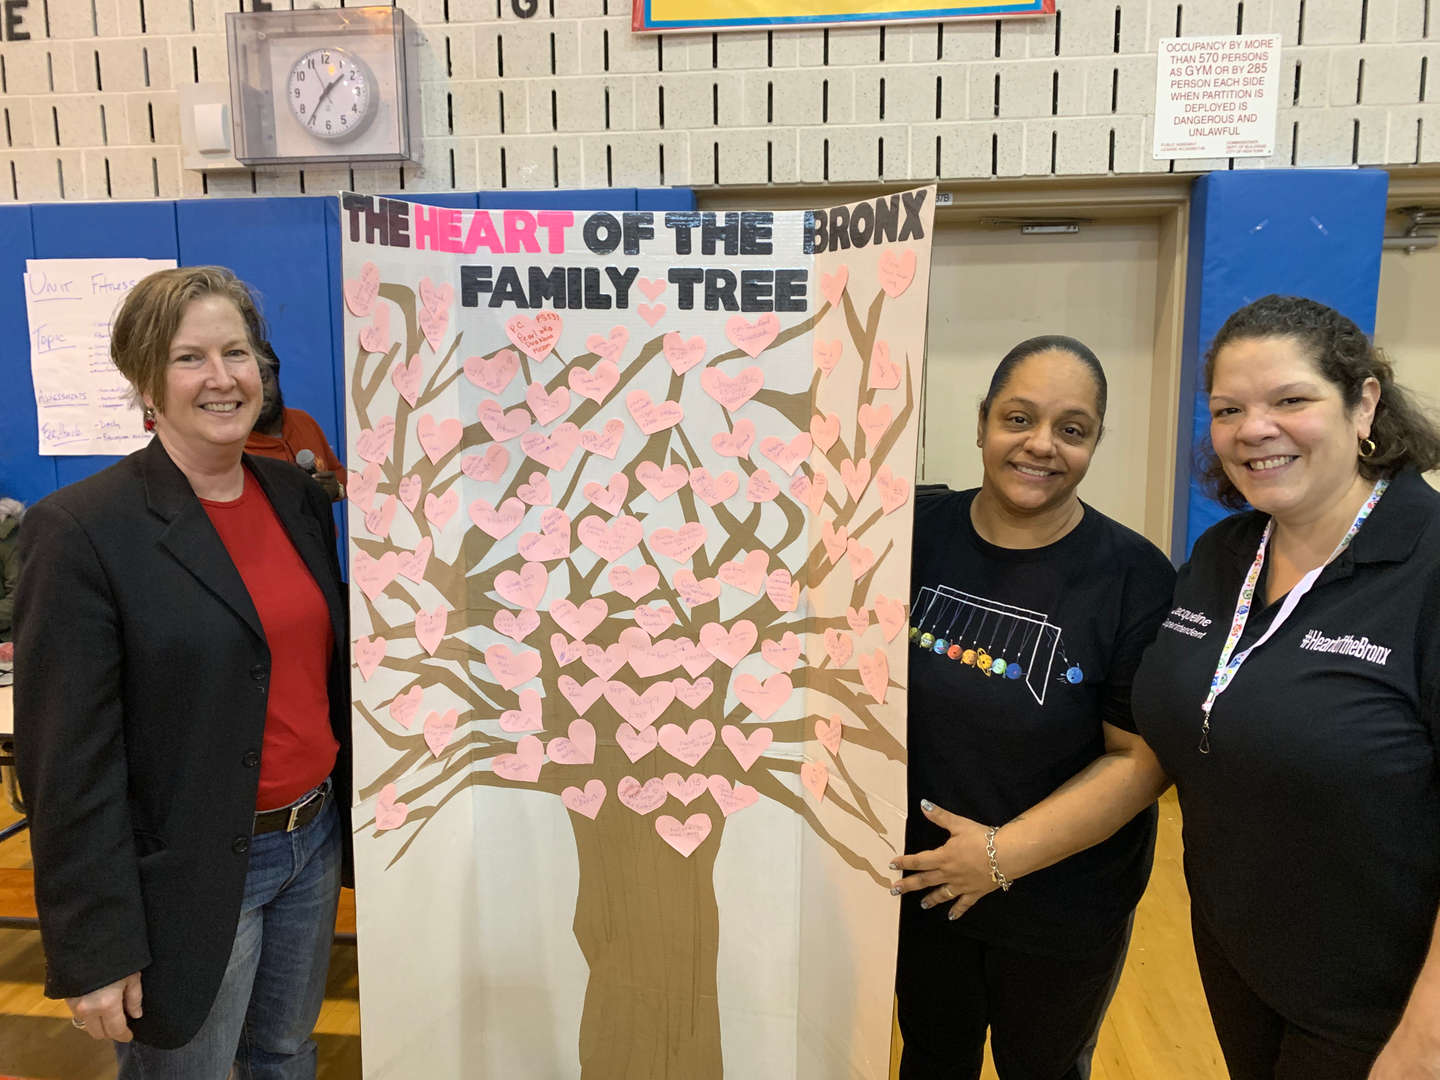 Three women holding up a craft board of the Heart of the Bronx Family Tree